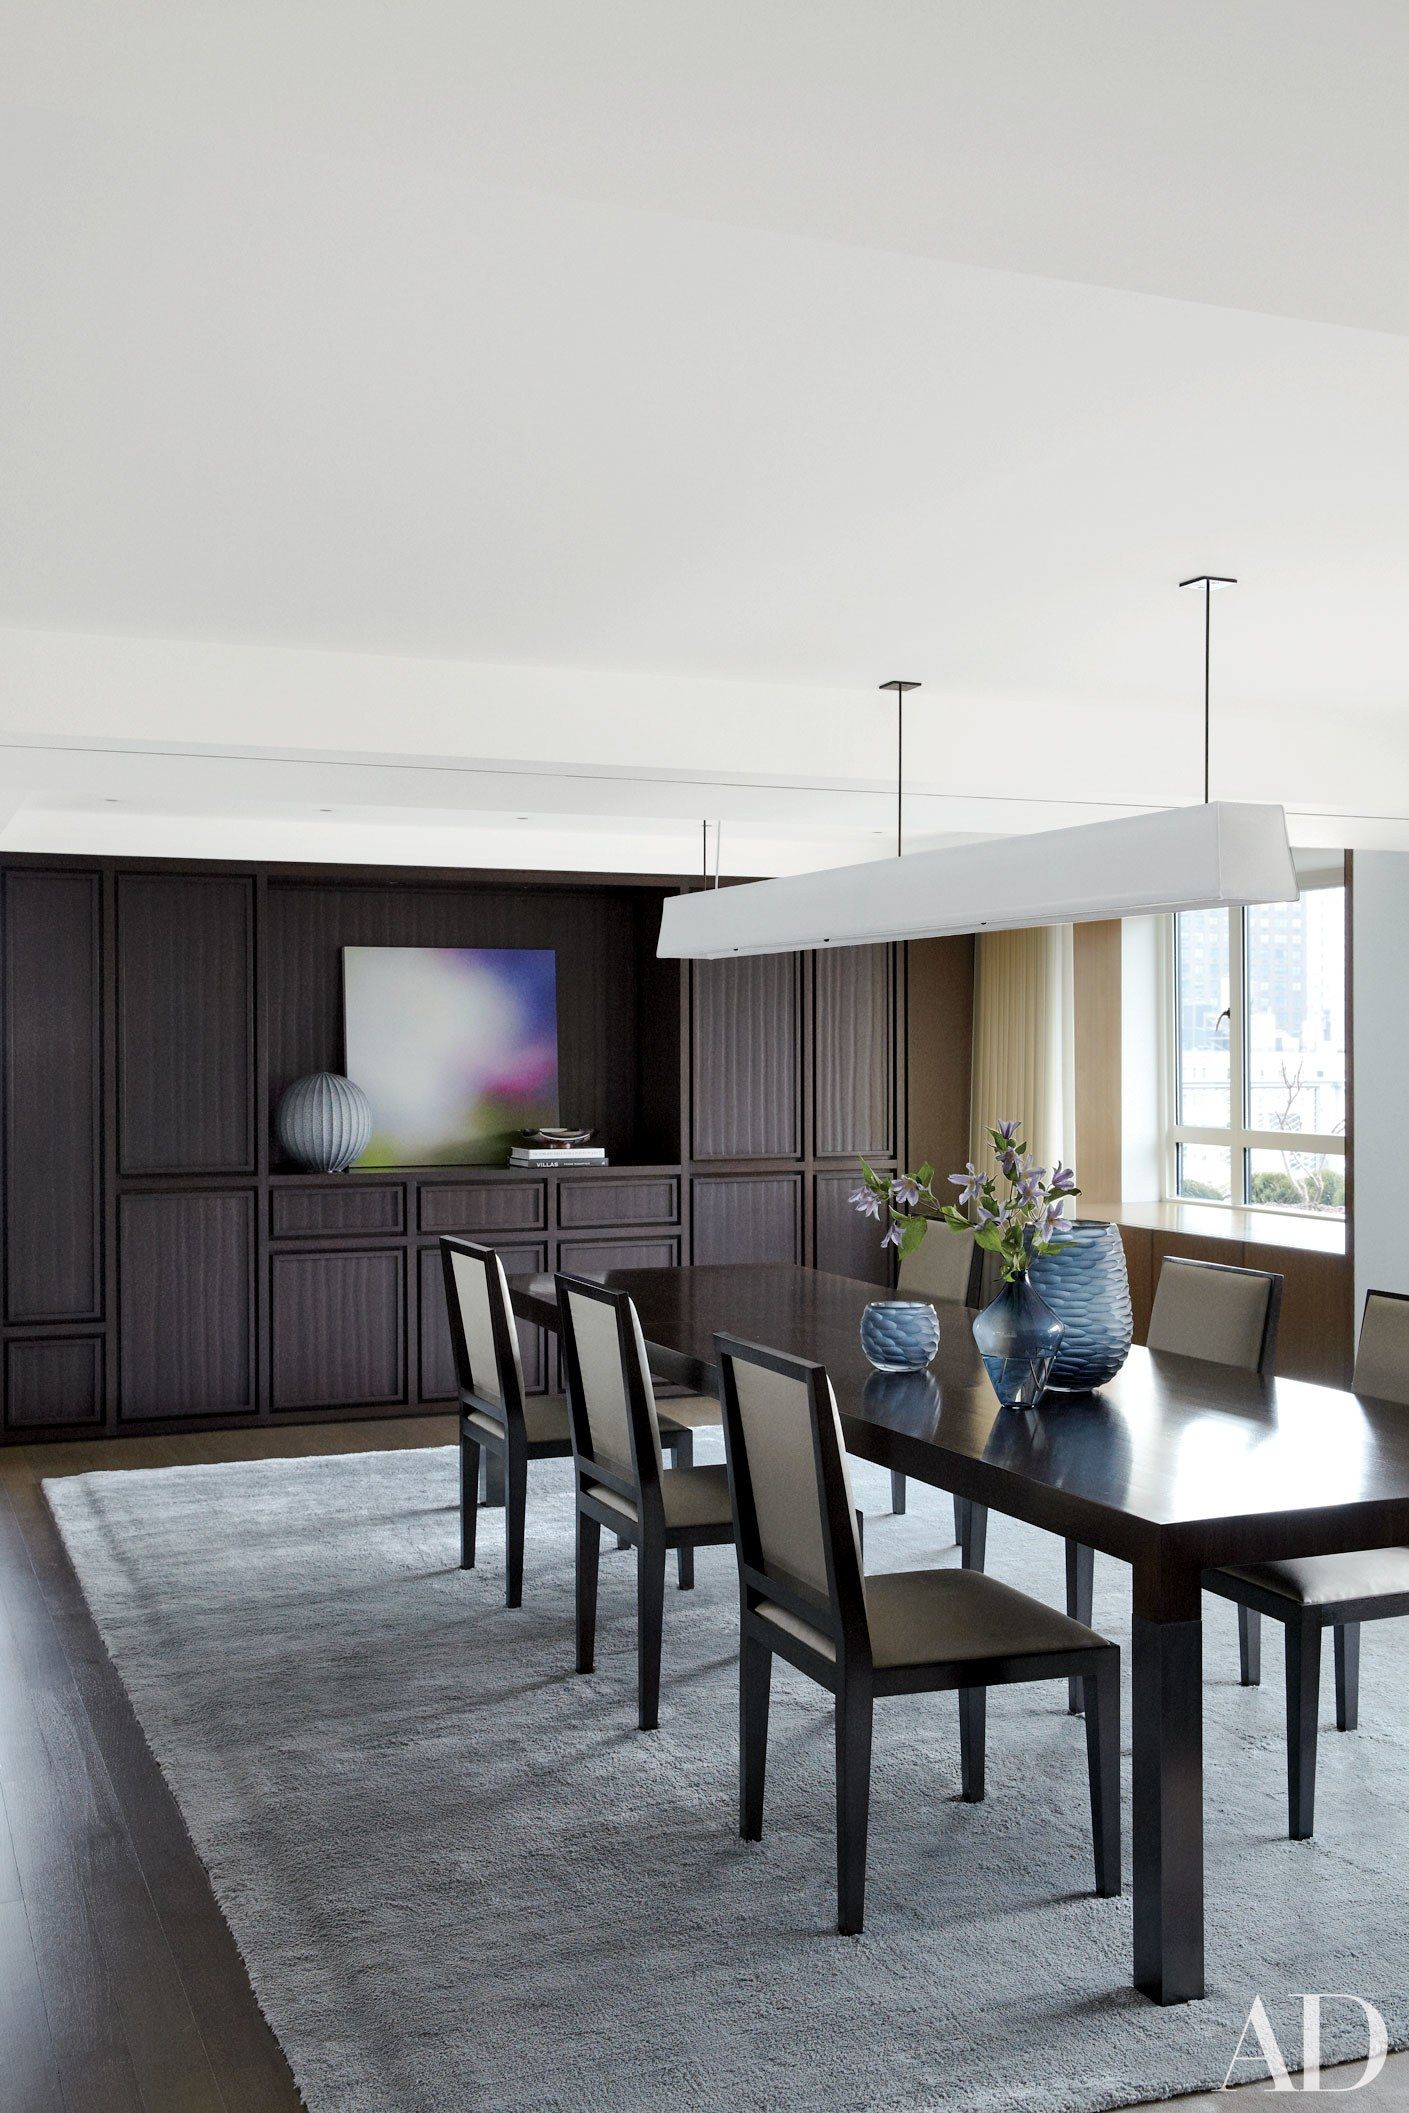 Sophisticated Dining Room Ideas For Your Home Design: Sophisticated Dining Room Decor By AD100 Designers